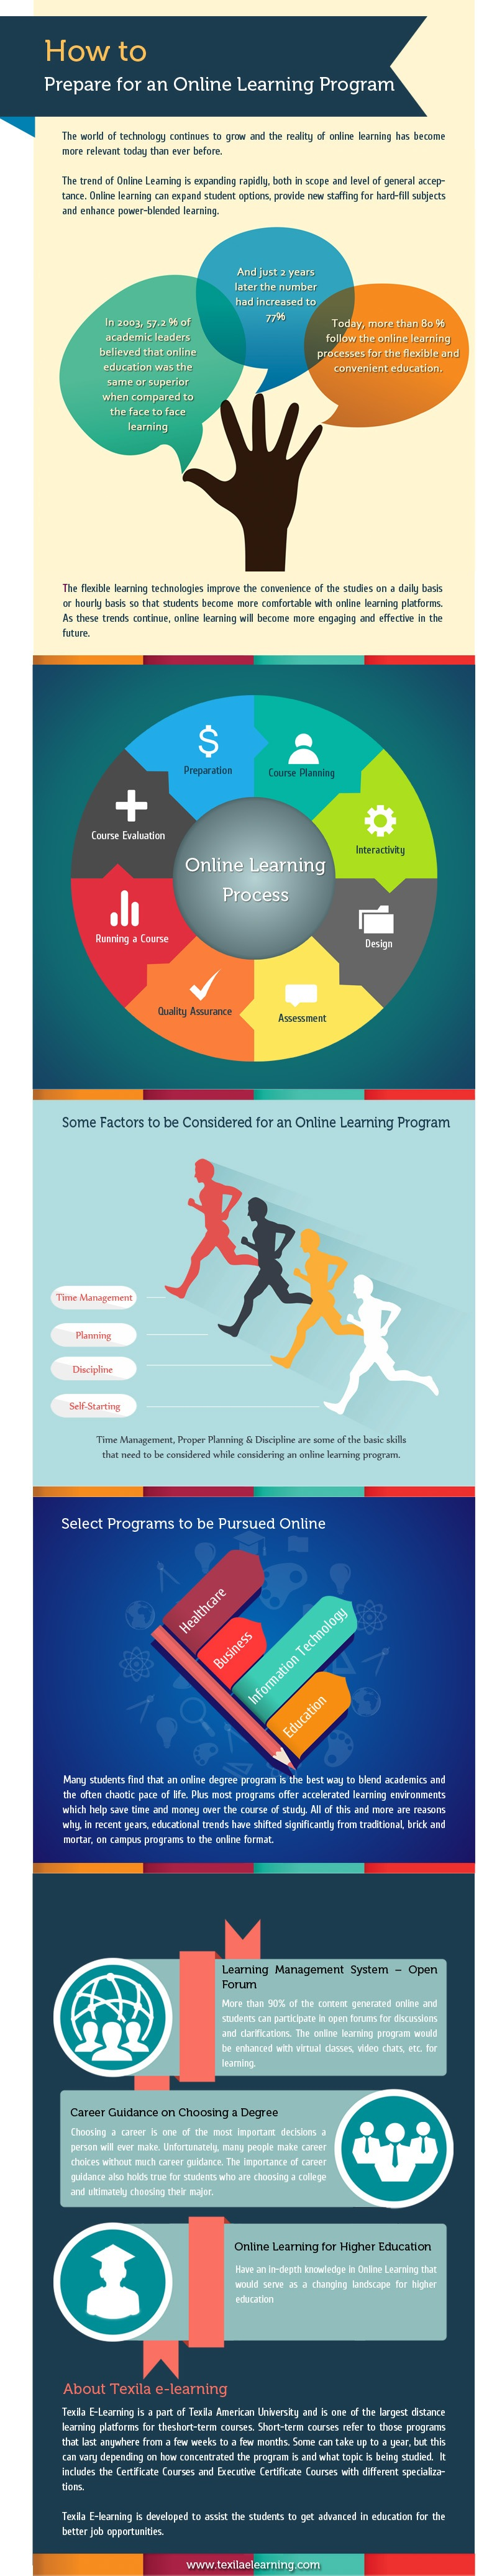 How To Prepare For An Online learning Program Infographic